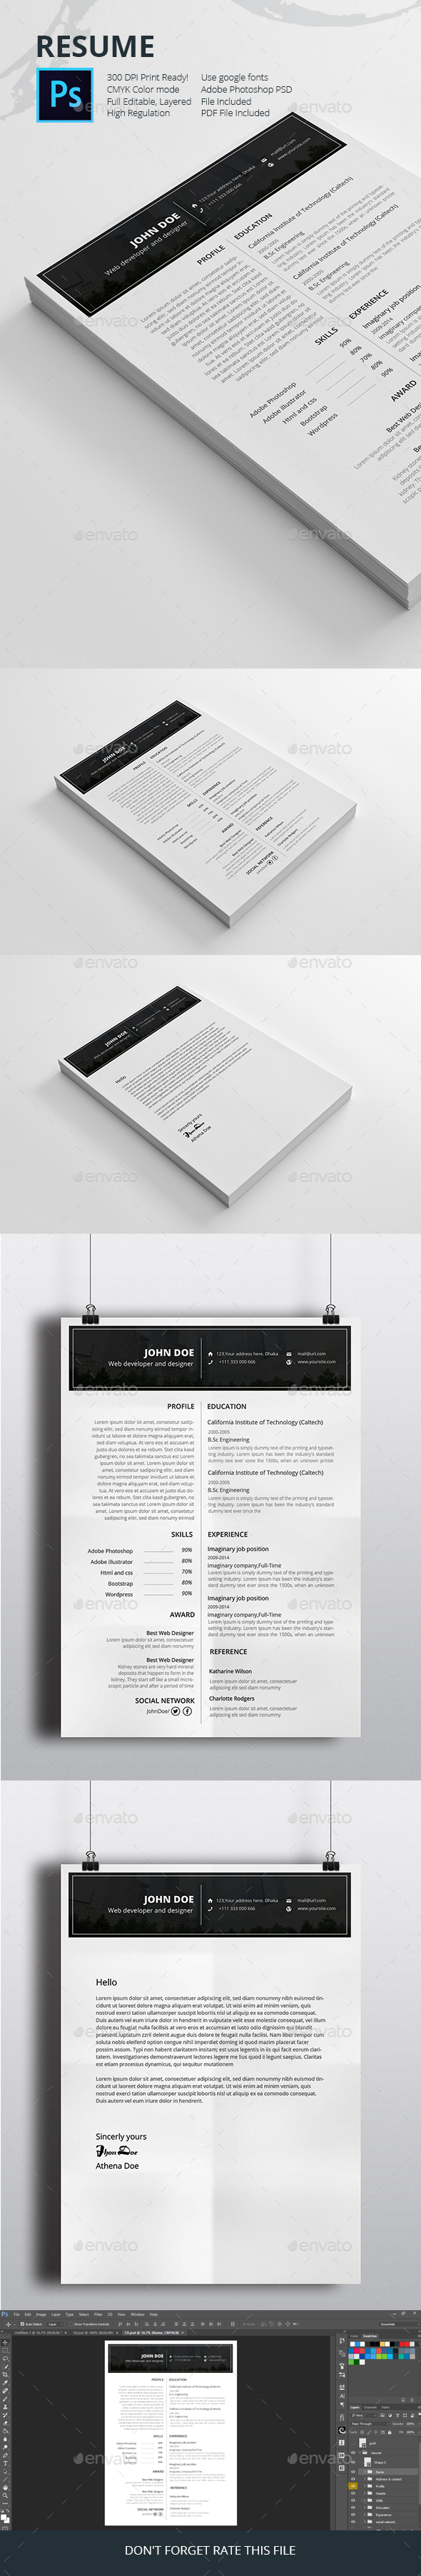 Job resume templates  - Resumes Stationery